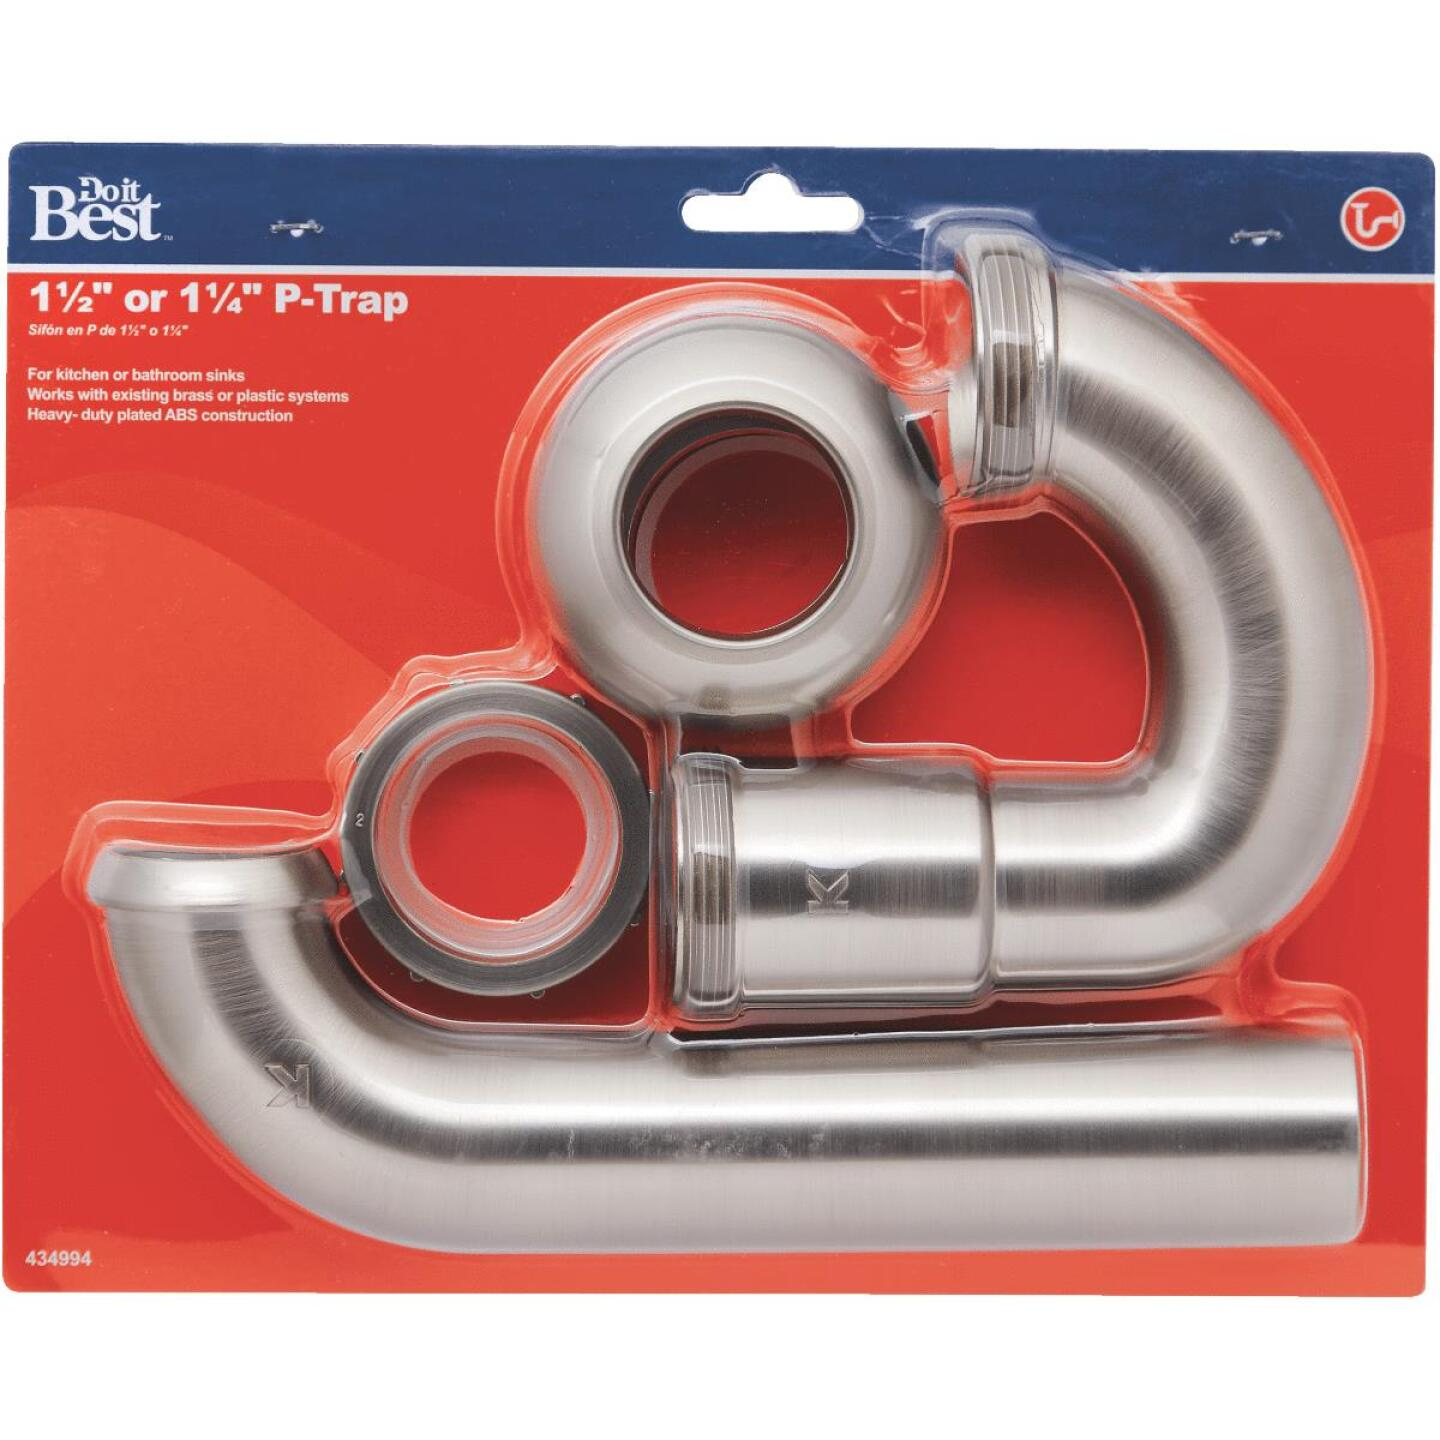 Do it Best 1-1/2 x 1-1/2 In. or 1-1/2 x 1-1/4 In. Brushed Nickel ABS P-Trap Image 2